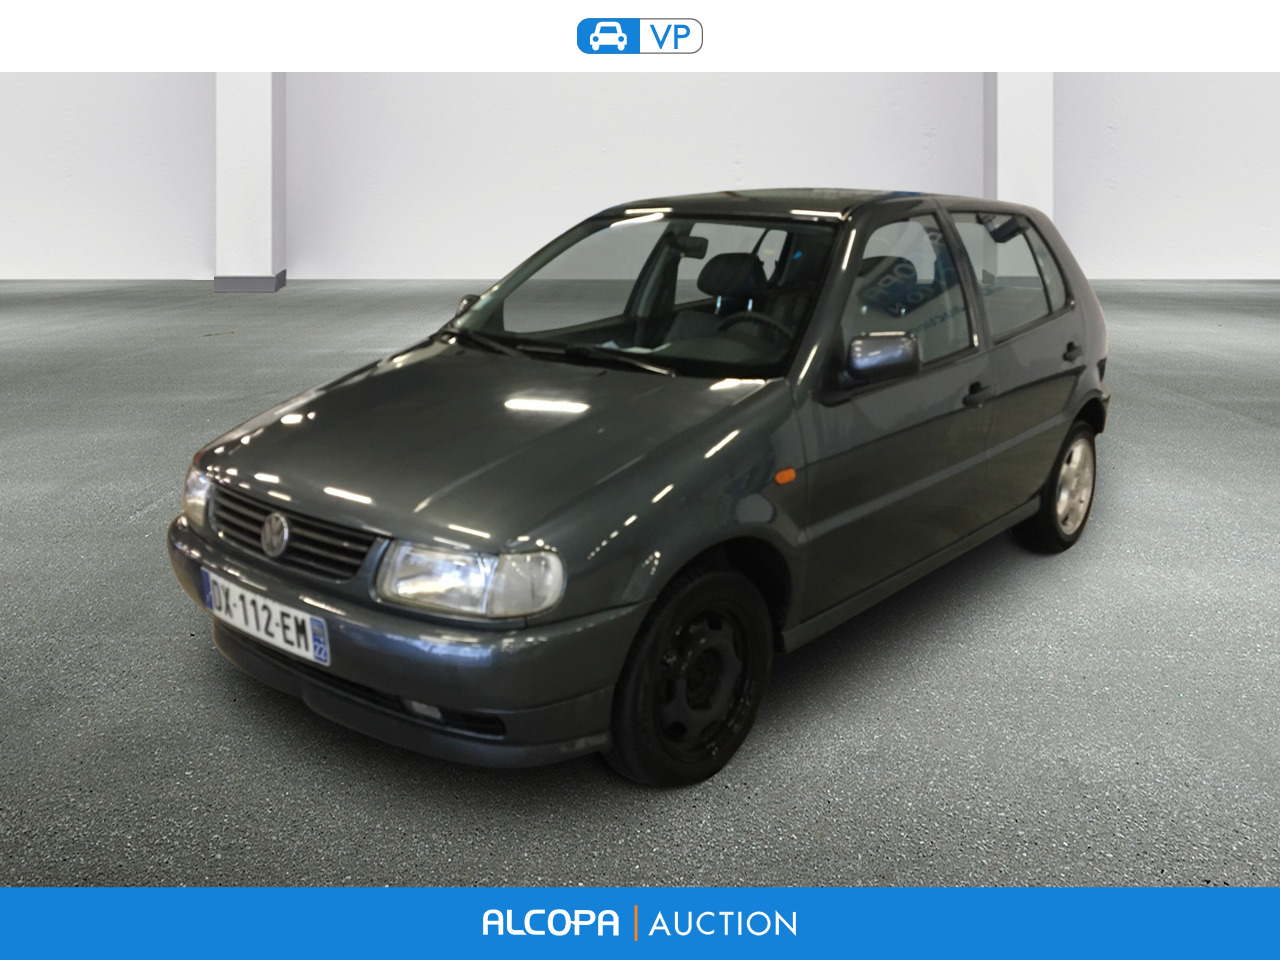 volkswagen polo polo 1 6 75ch carat 5p rennes alcopa auction. Black Bedroom Furniture Sets. Home Design Ideas